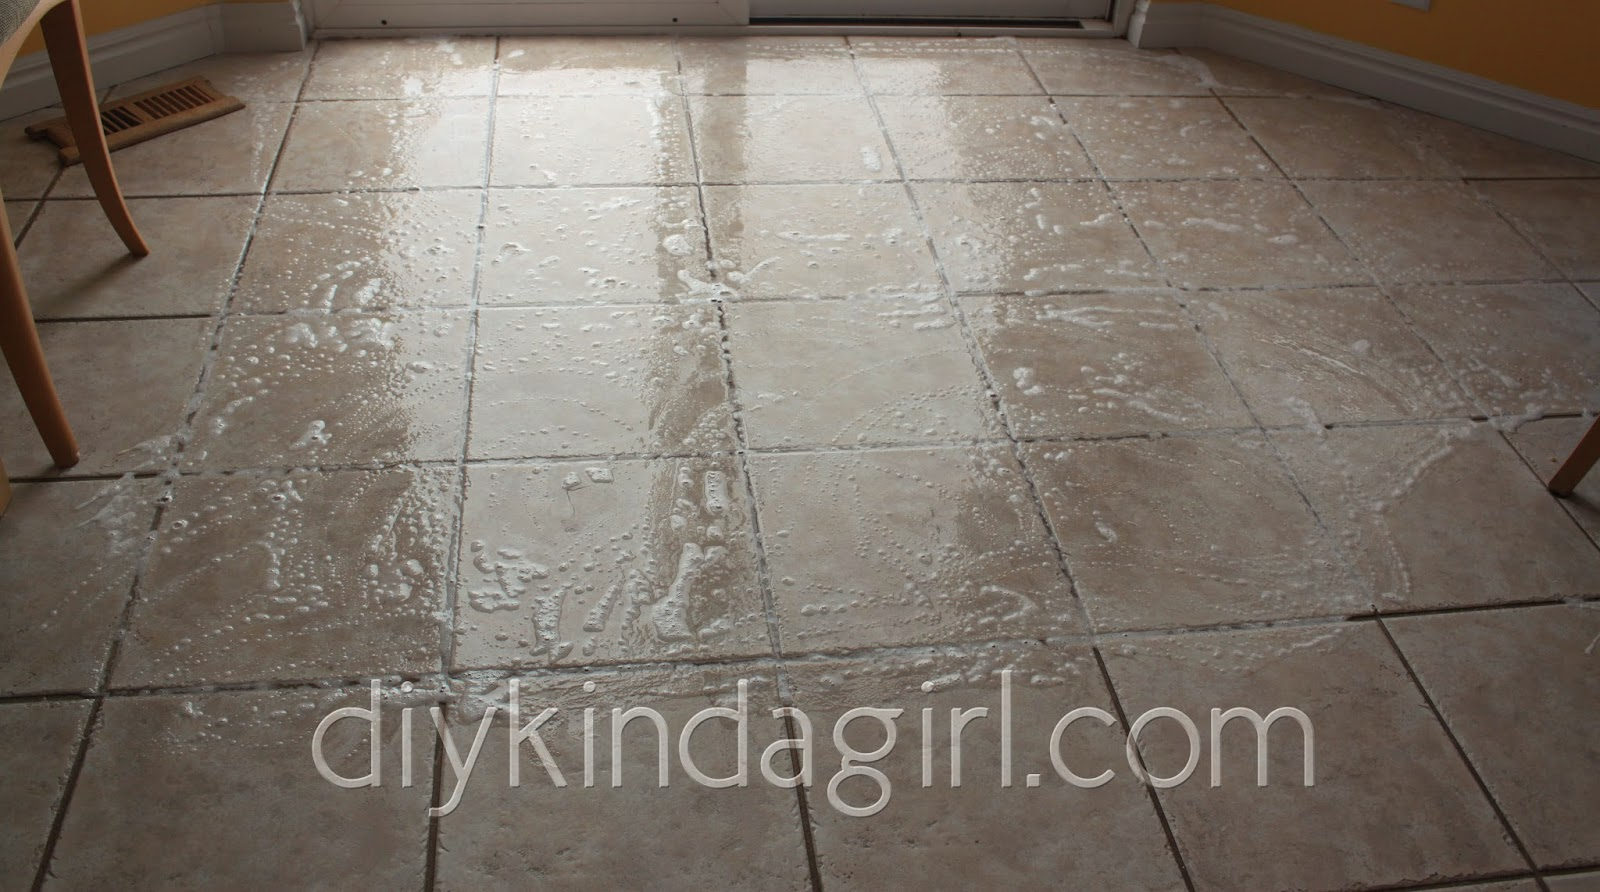 How to clean floor tile grout with oxiclean diy kinda girl diy household tip cleaning grout oxiclean vs dailygadgetfo Gallery